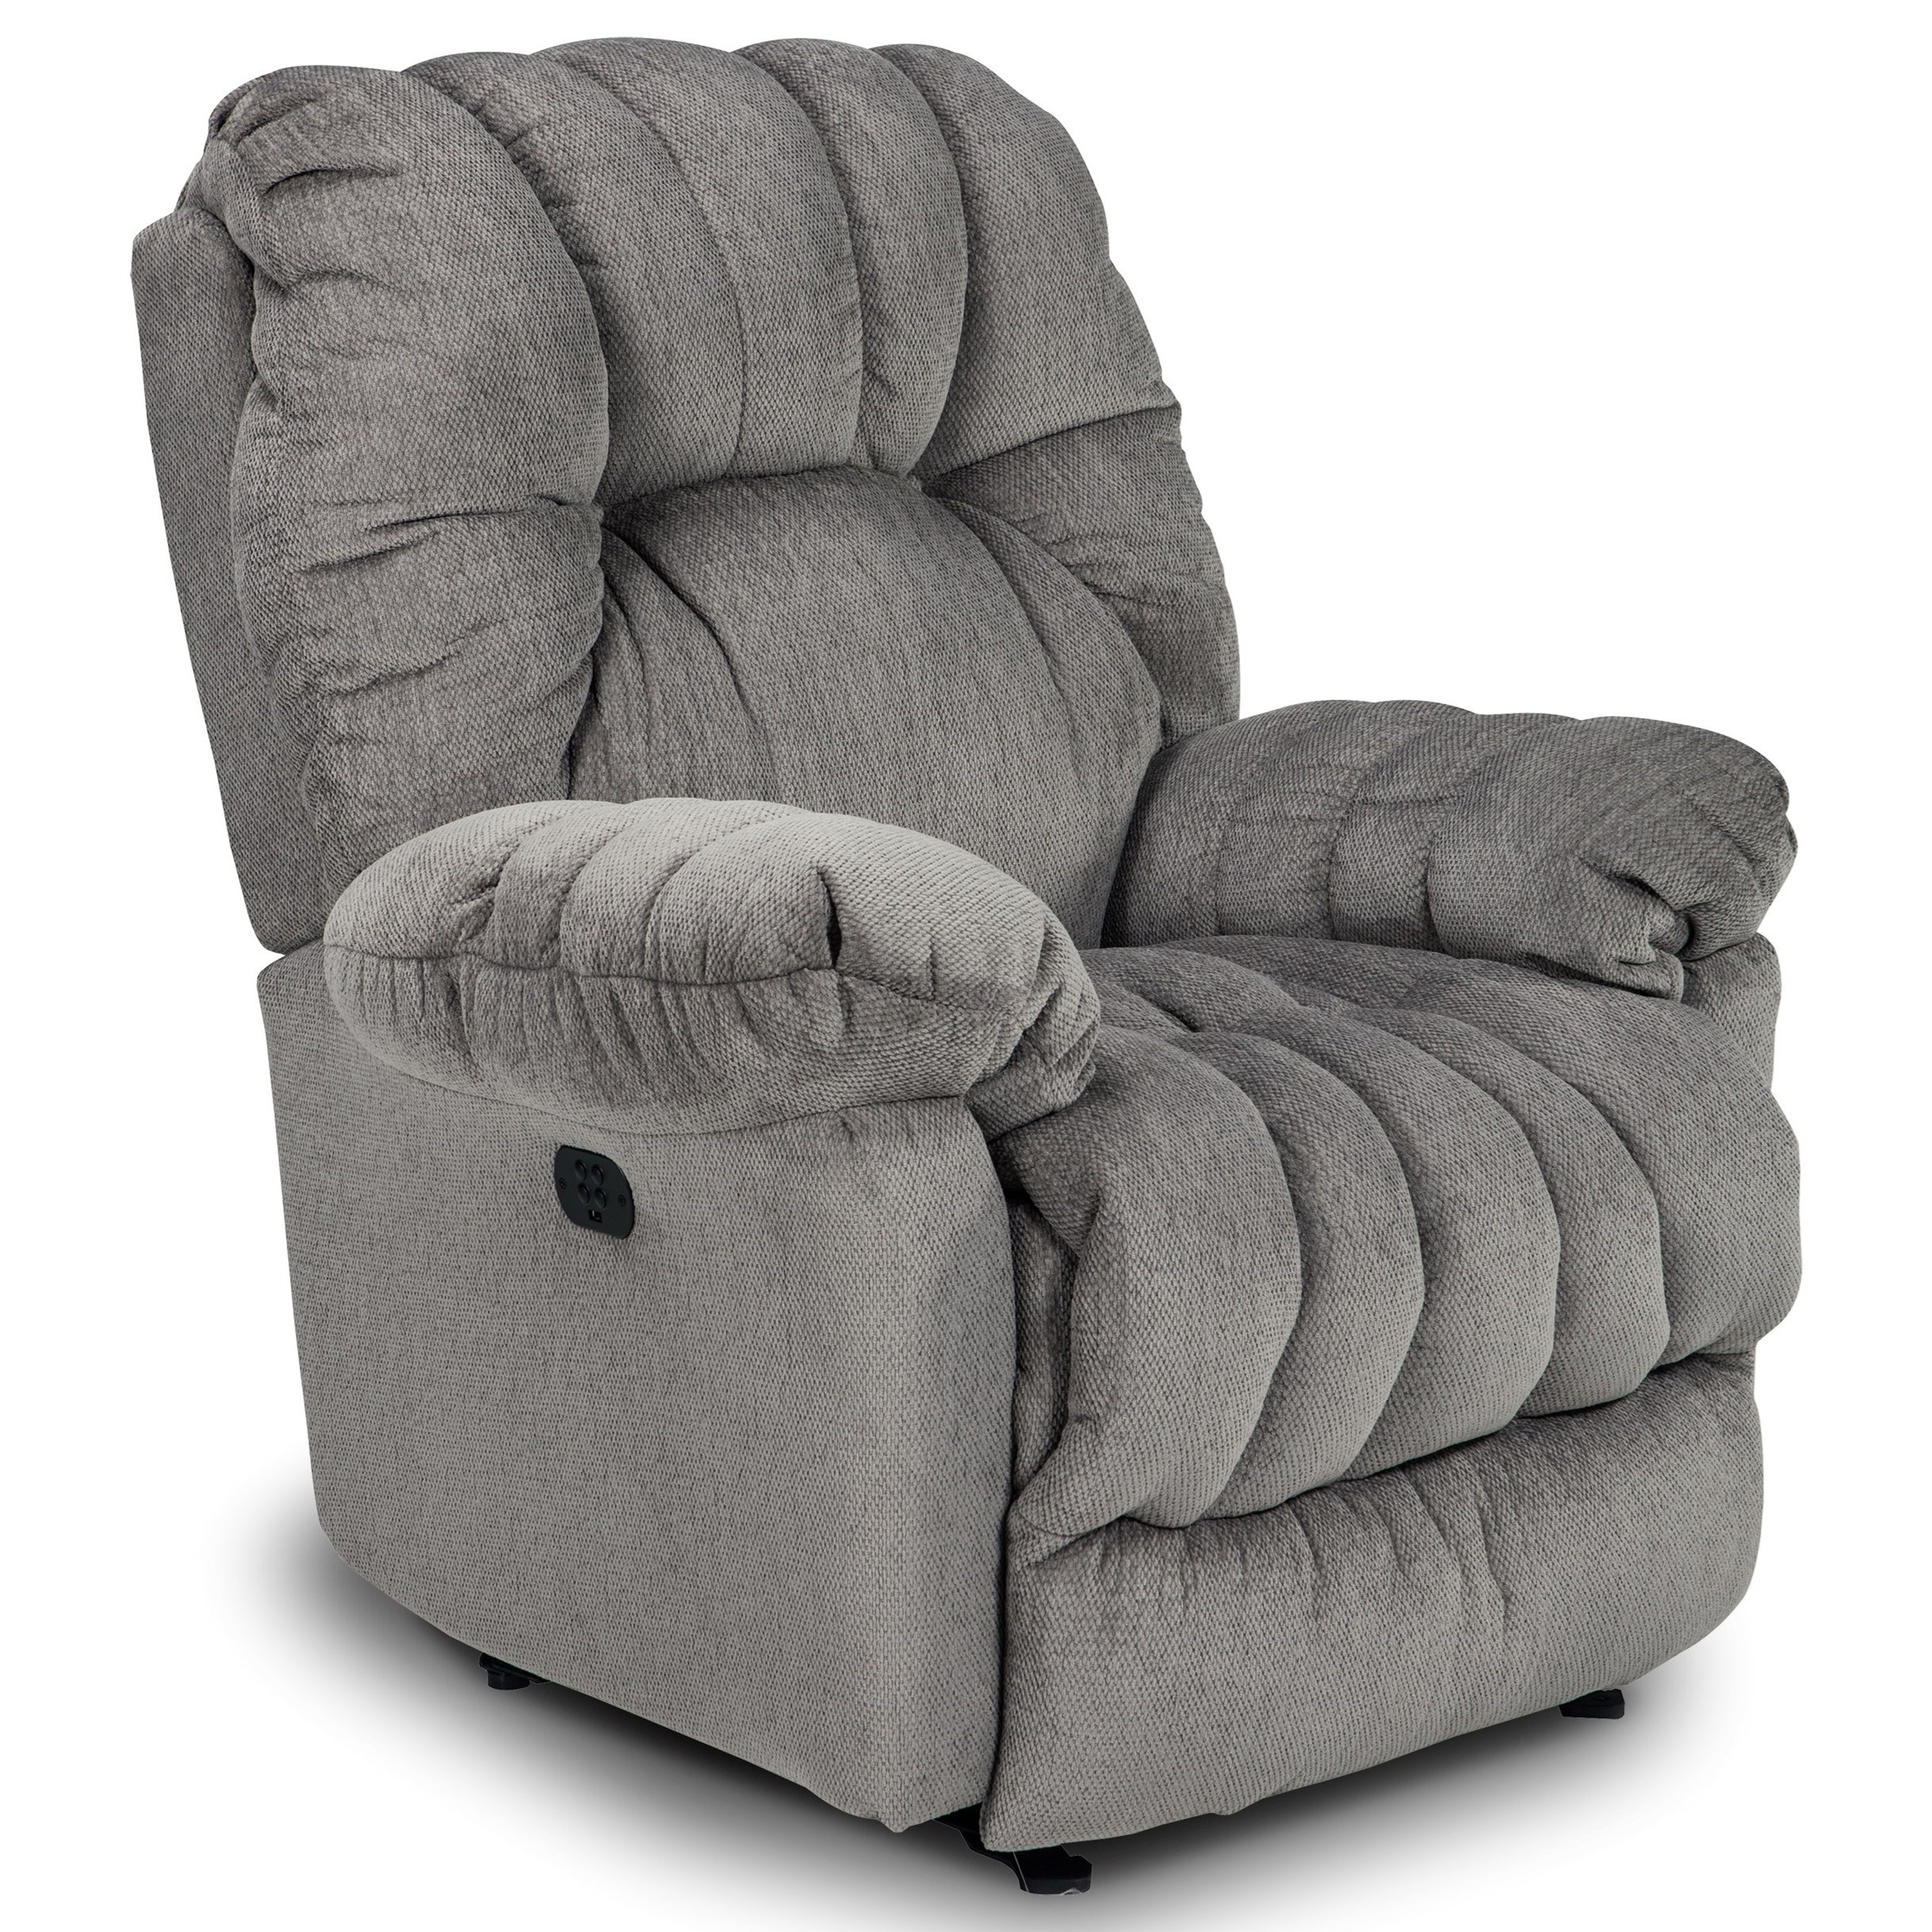 Best Home Furnishings Recliners - Medium Conen Rocker Recliner - Item Number: 9MW97